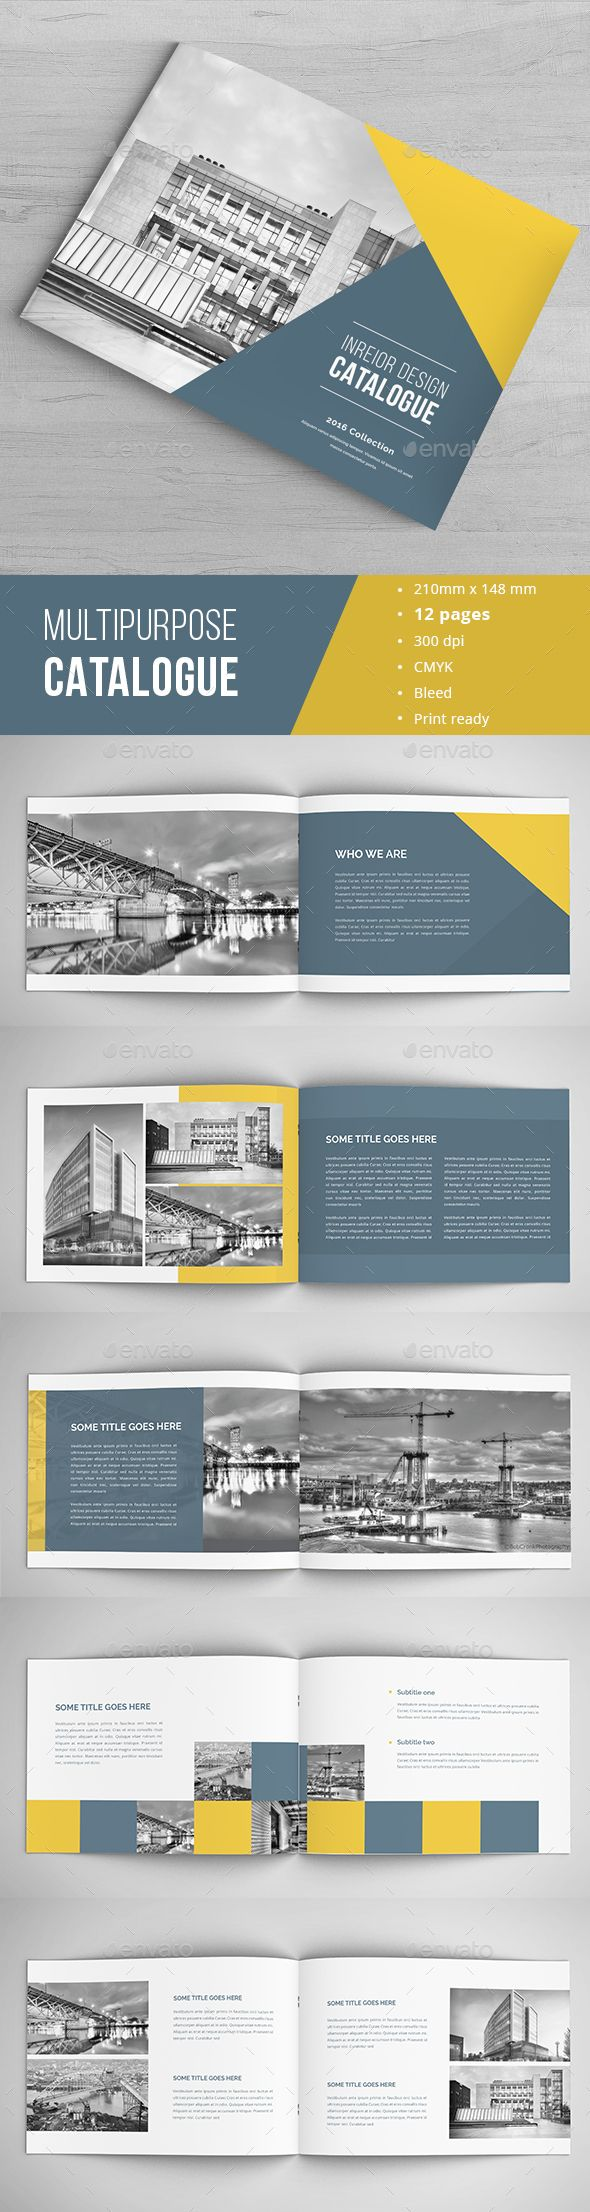 Modern Architecture Brochure Template InDesign INDD. Download here: http://graphicriver.net/item/modern-architecture-brochure/16753257?ref=ksioks